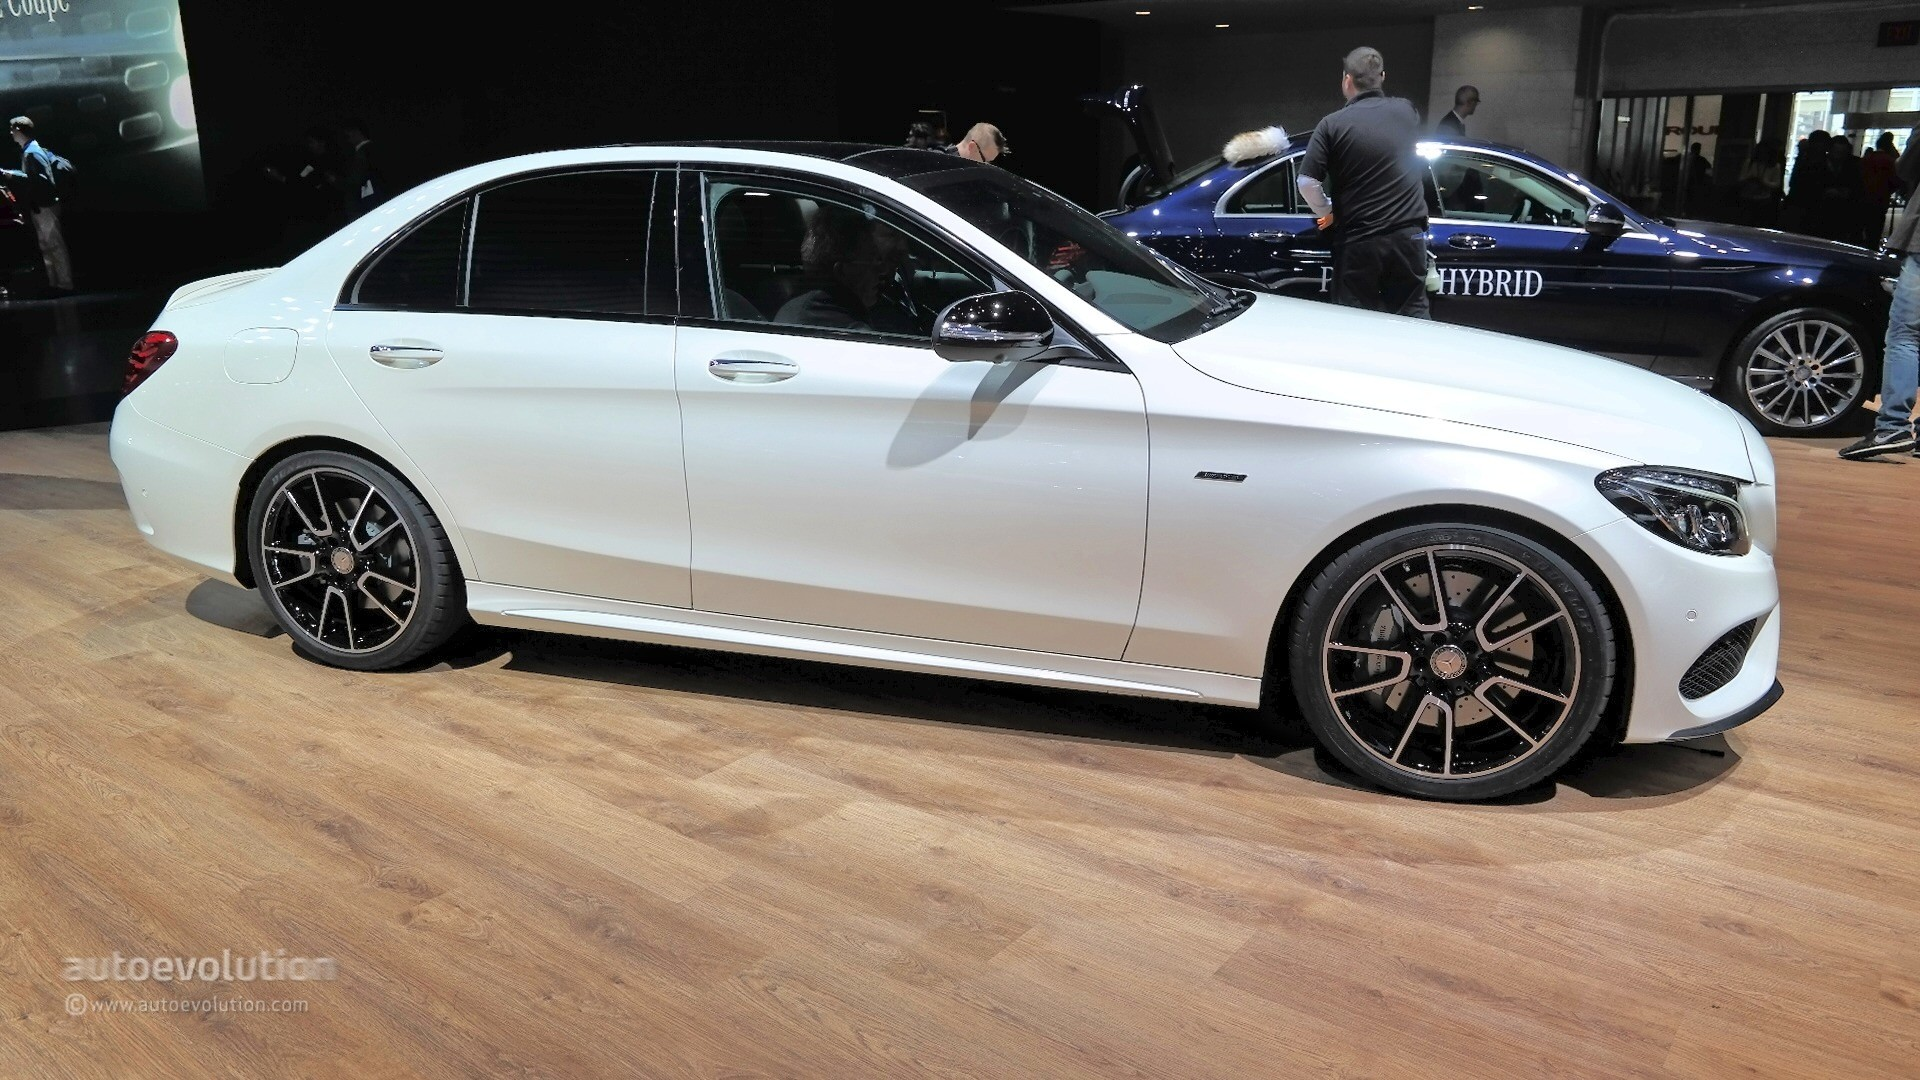 Mercedes benz c450 amg sport looks ordinary at 2015 for Mercedes benz c450 amg